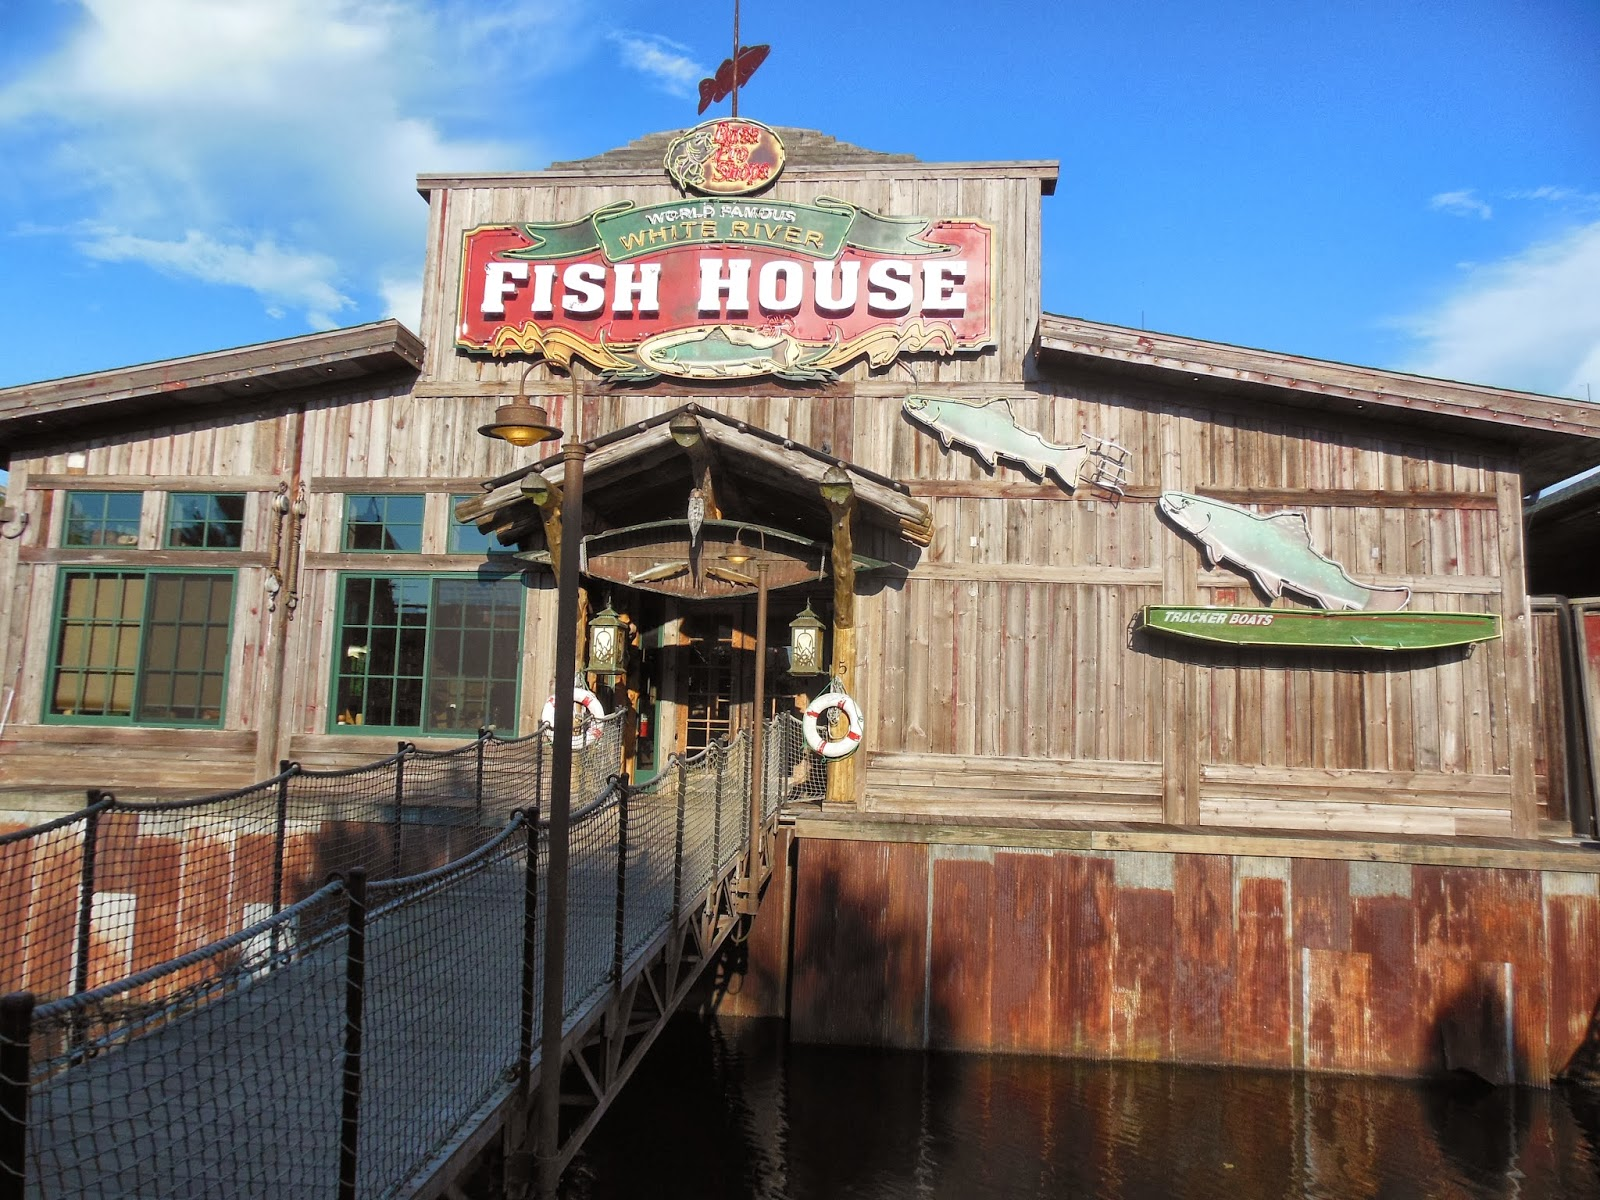 Fish house branson mo 28 images the fish house for The fish house restaurant